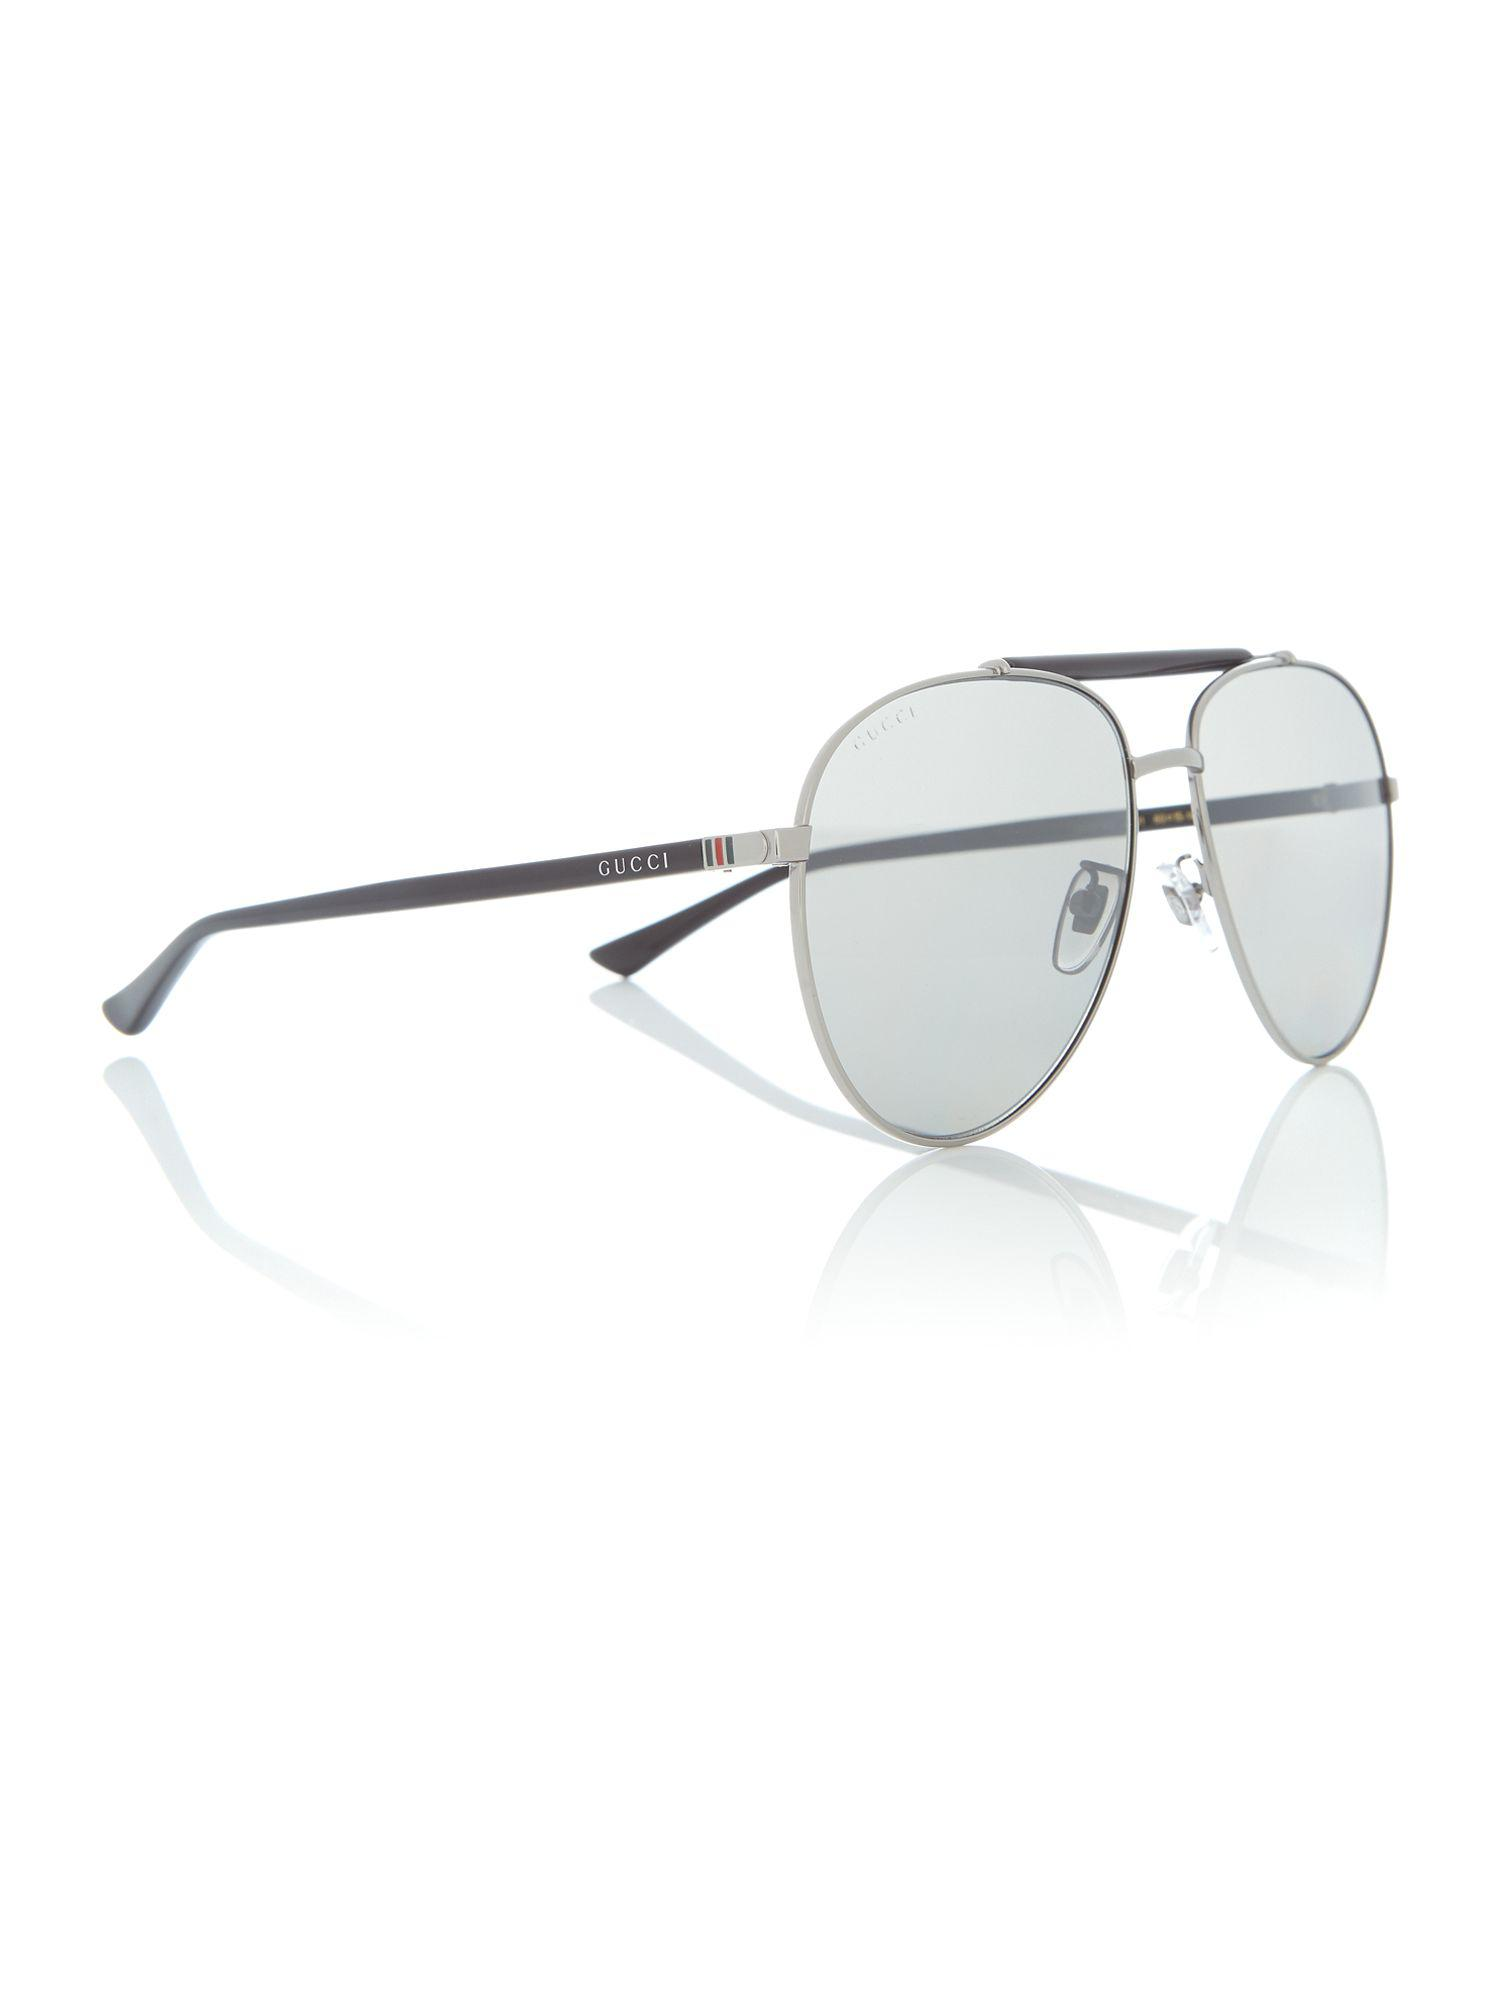 4b6ada33b373 Gucci Grey 0gc000972 Round Sunglasses in Gray for Men - Lyst